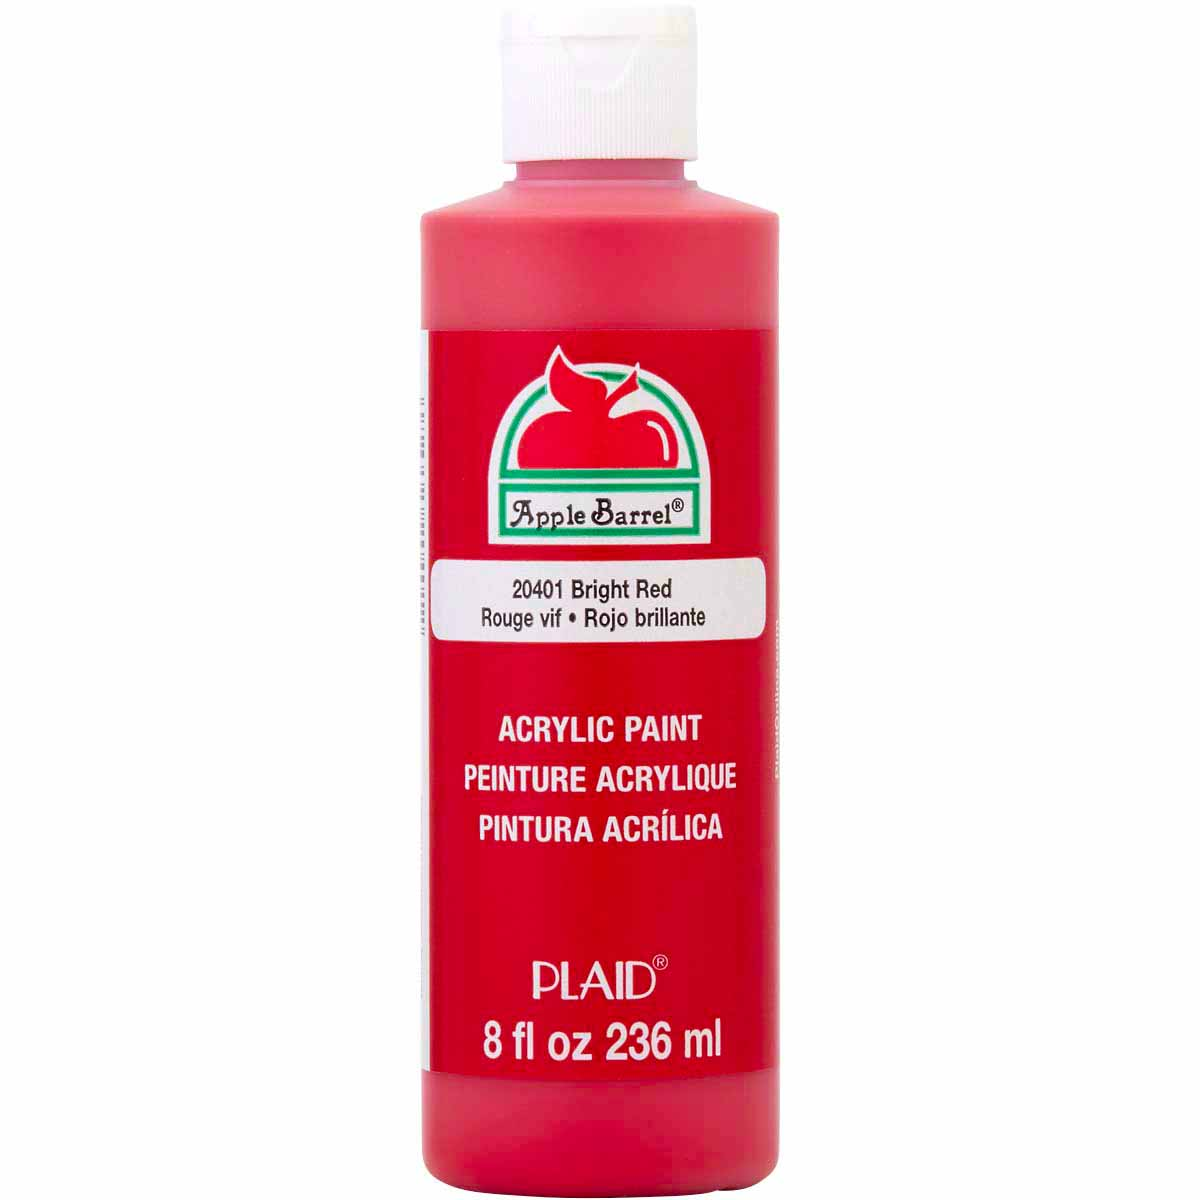 Apple Barrel ® Colors - Bright Red, 8 oz. - j20401